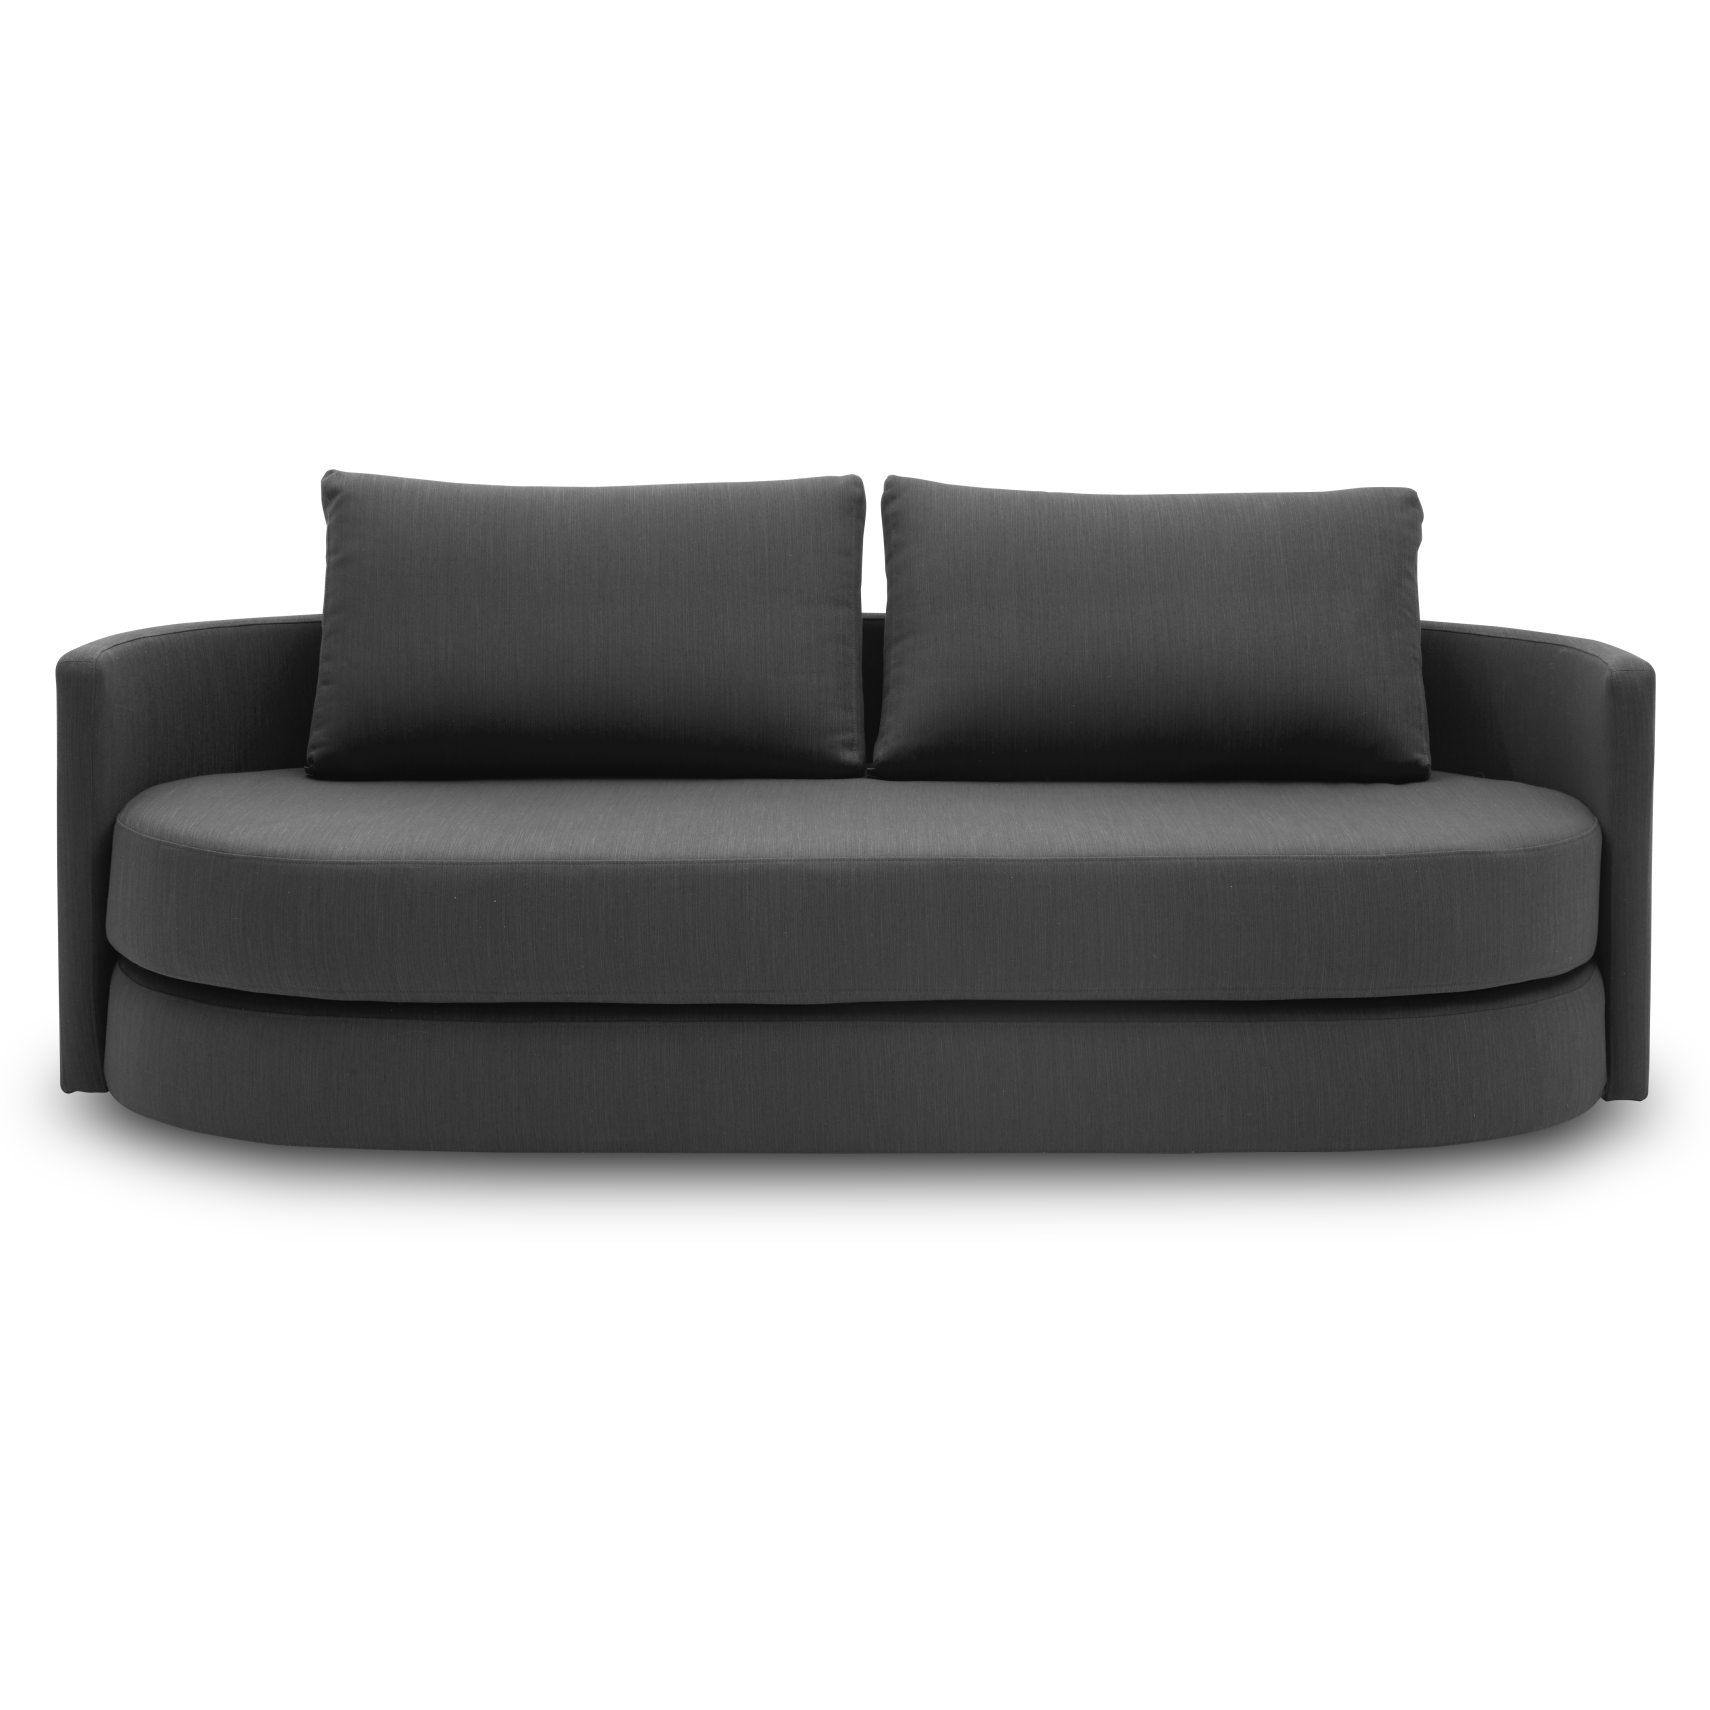 Vile Sovesofa - Elegance 509 Anthracite Grey stof og pocketspring madras